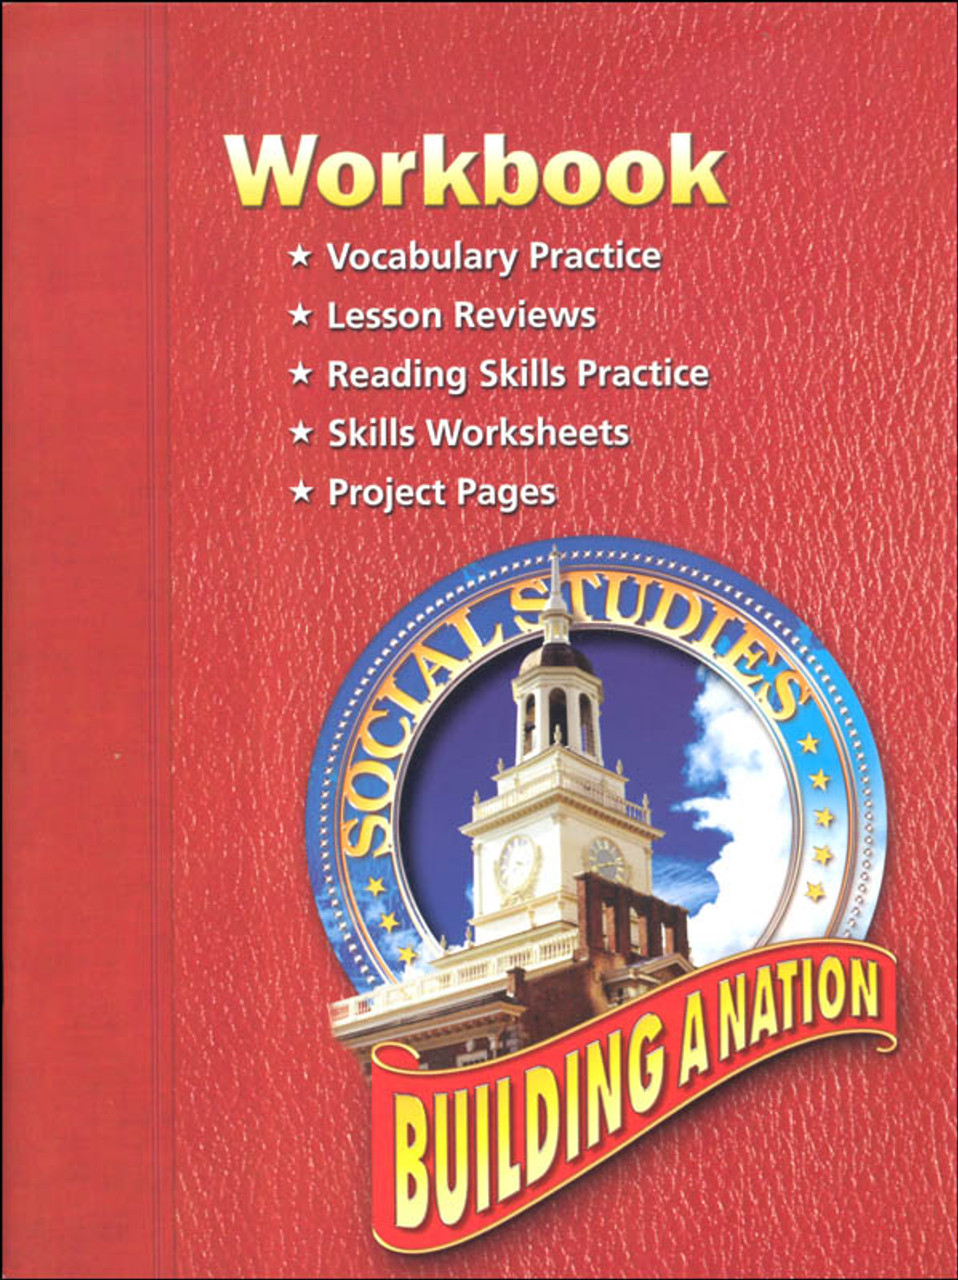 medium resolution of Scott Foresman Social Studies Grade 6 Student Workbook - Building A Nation  - Classroom Resource Center